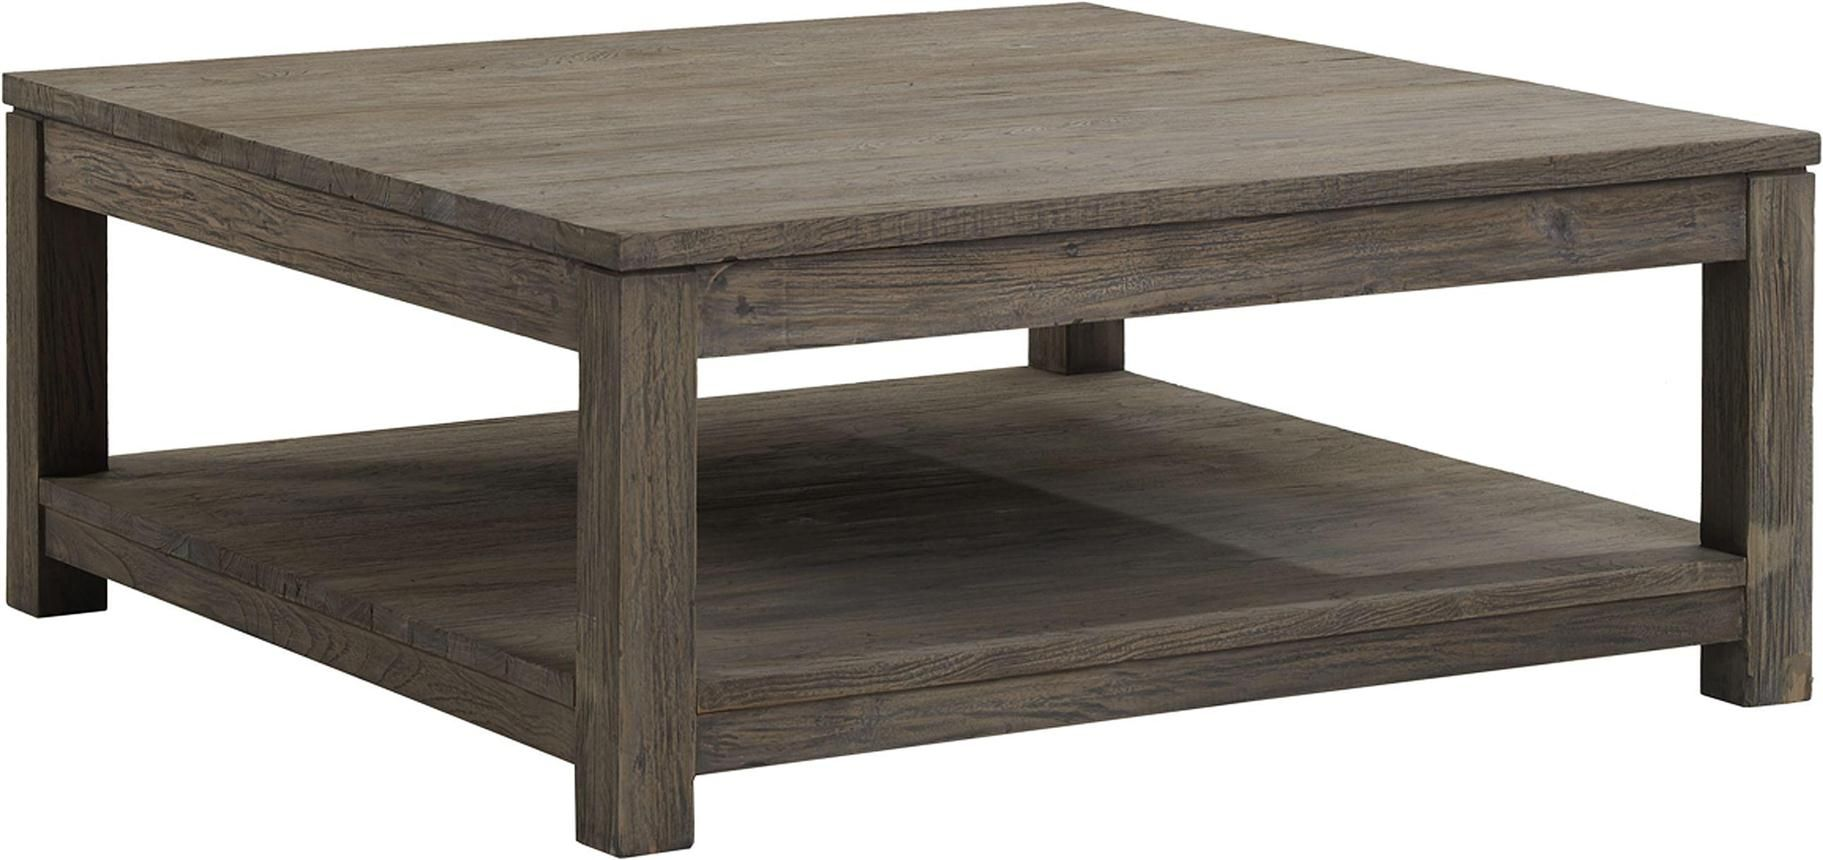 Living Room Tables Wood - Living room coffee table drift square coffee table large grey brushed natural wood indoor our collections